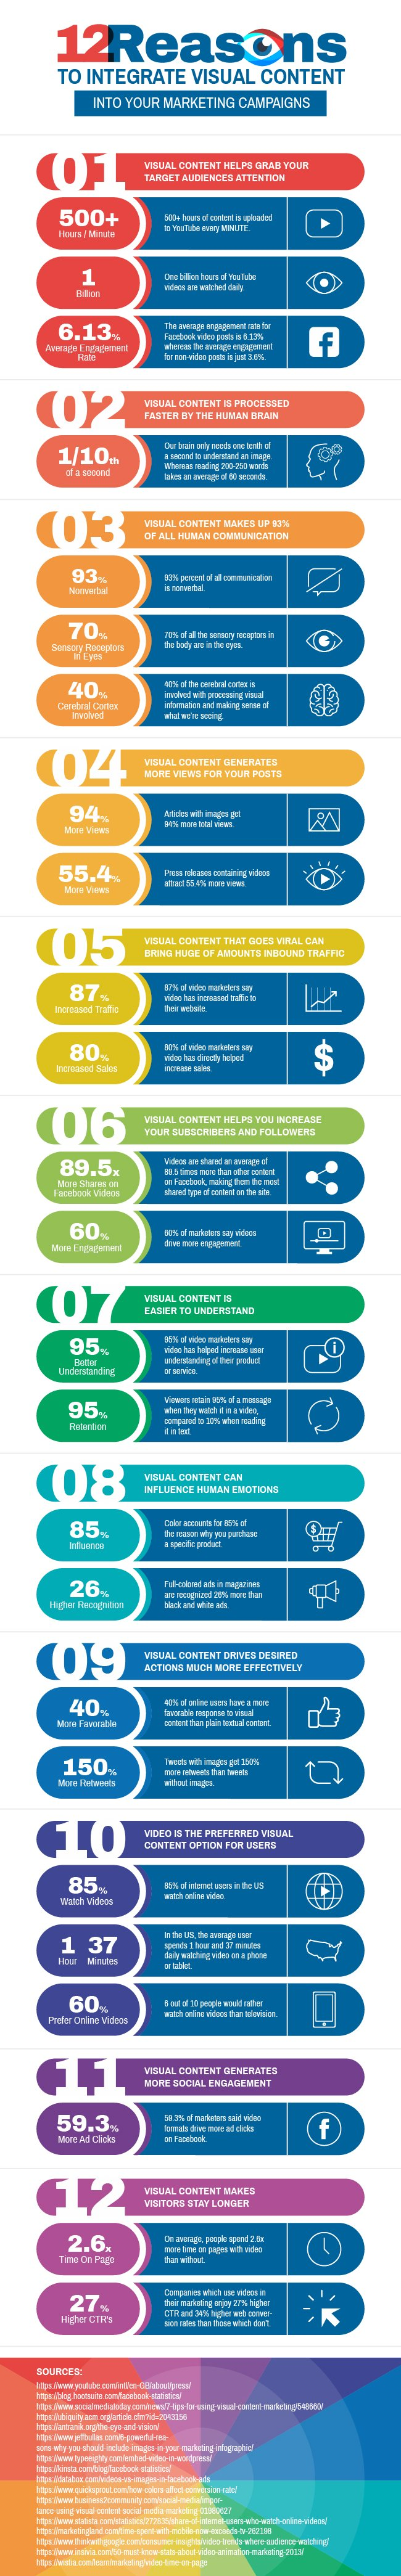 12 Reasons to Integrate Visual Content Into Your Marketing Campaigns 2 - 650 wide - 72dpi-01